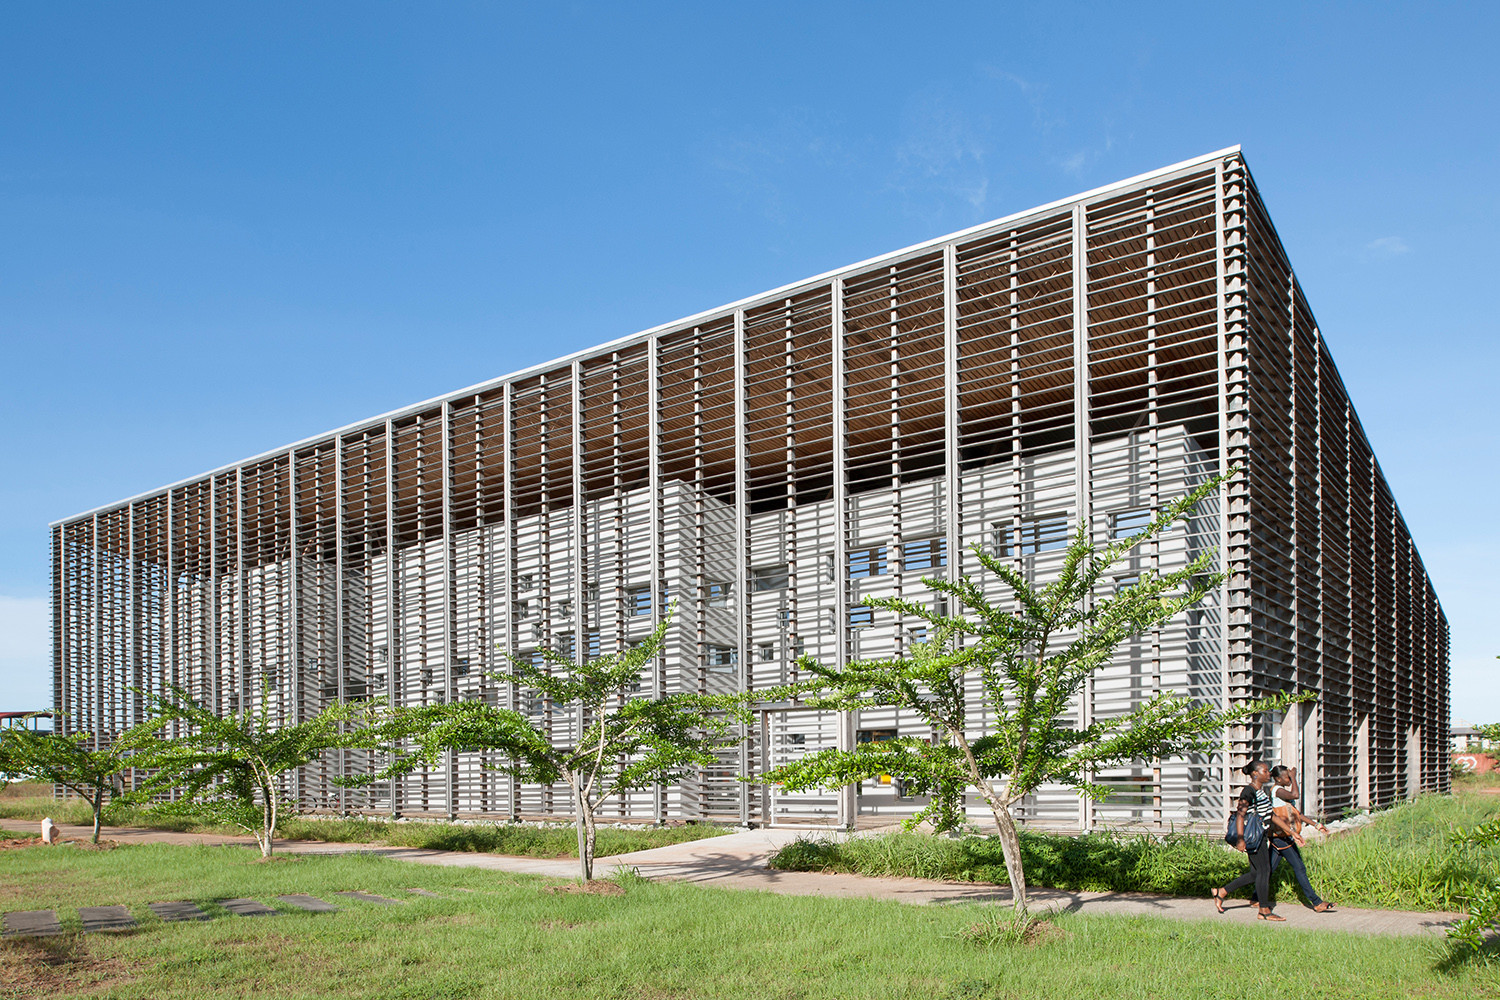 New University Library in Cayenne / rh+ architecture, © Jean-Michel André